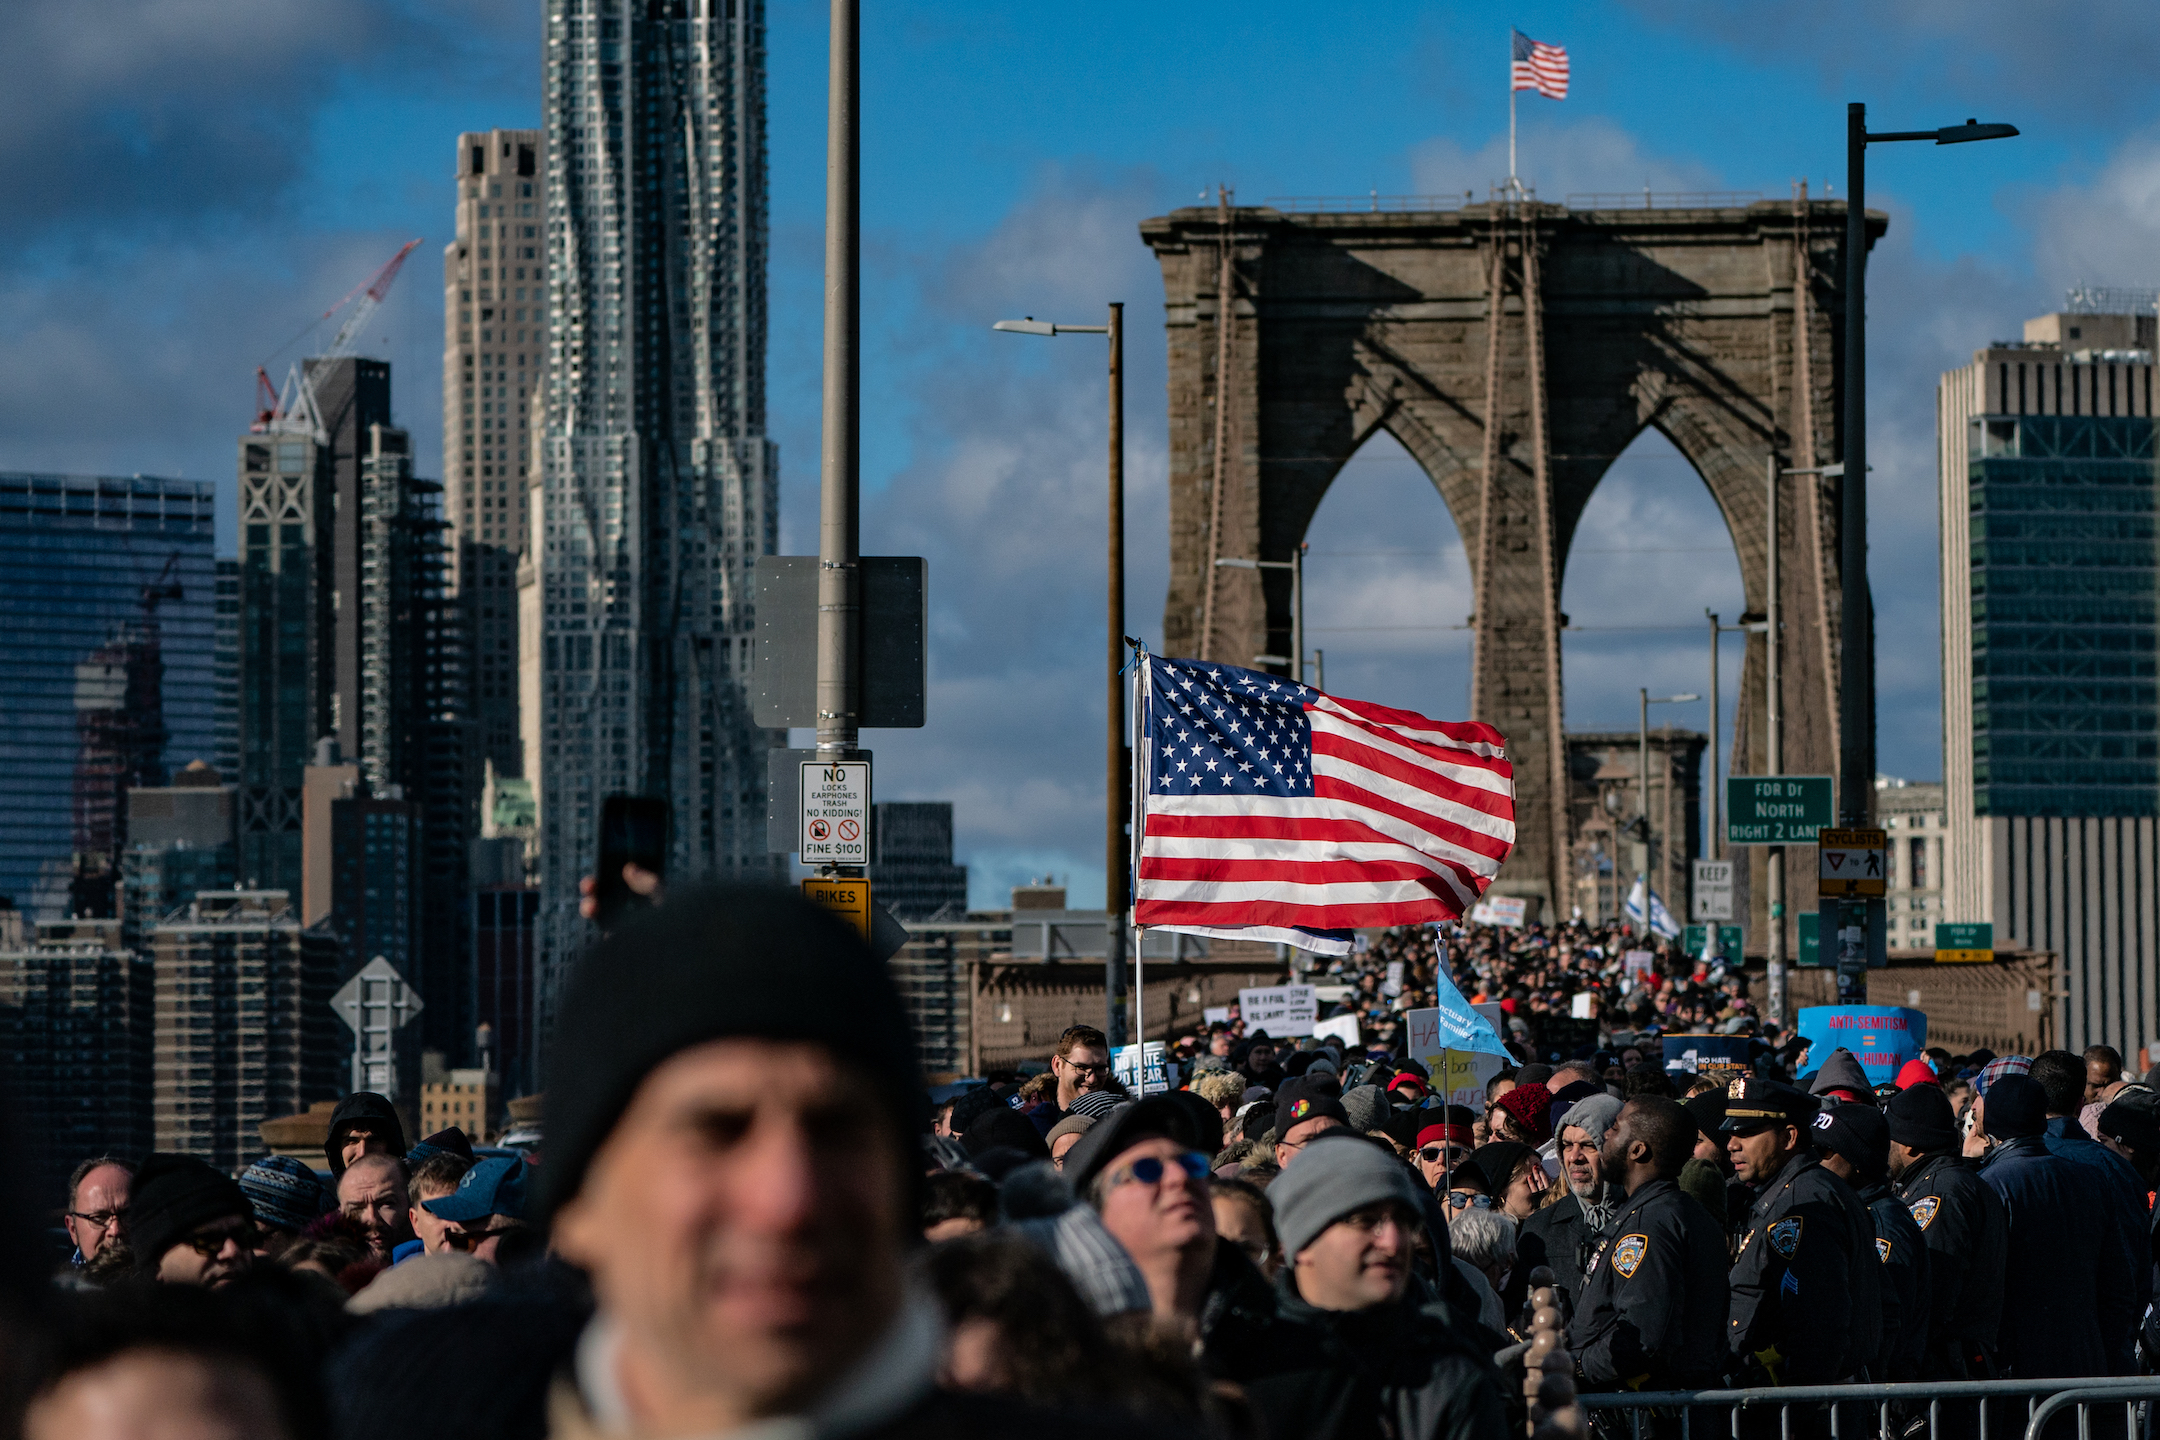 Thousands marched across the Brooklyn Bridge to protest antisemitism on January 5, 2020.